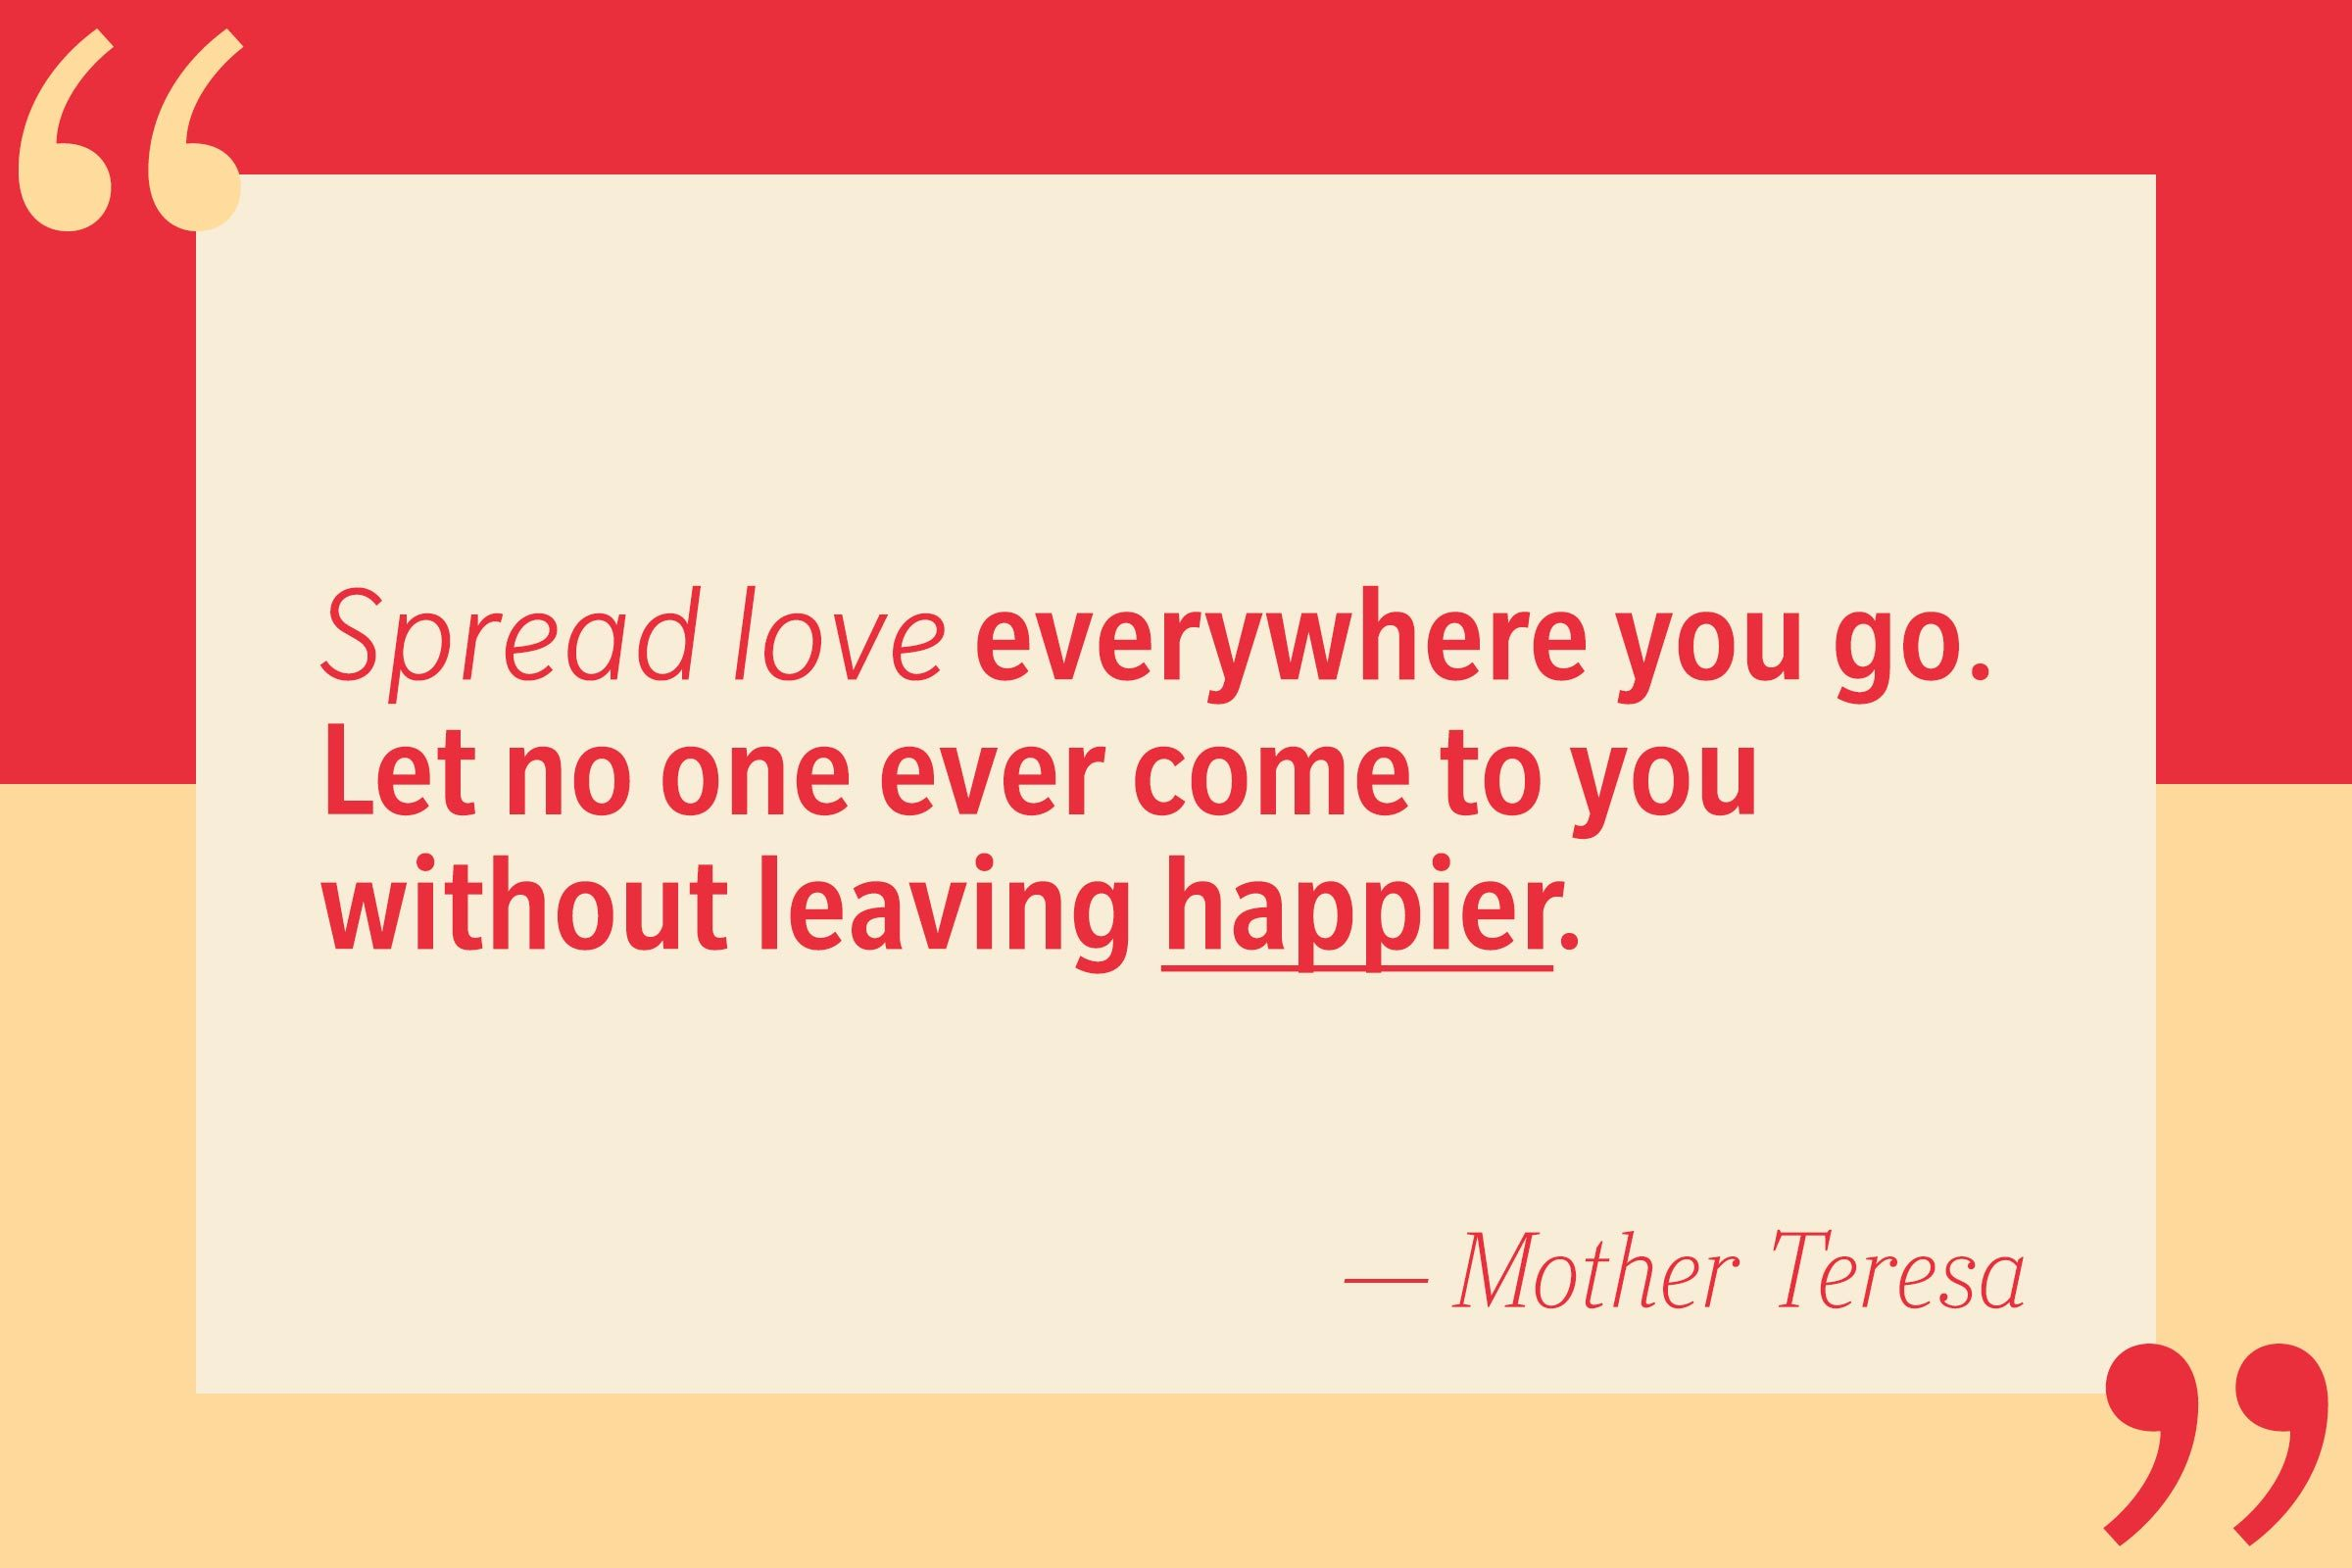 Spread love everywhere you go. Let no one ever come to you without leaving happier. — Mother Teresa